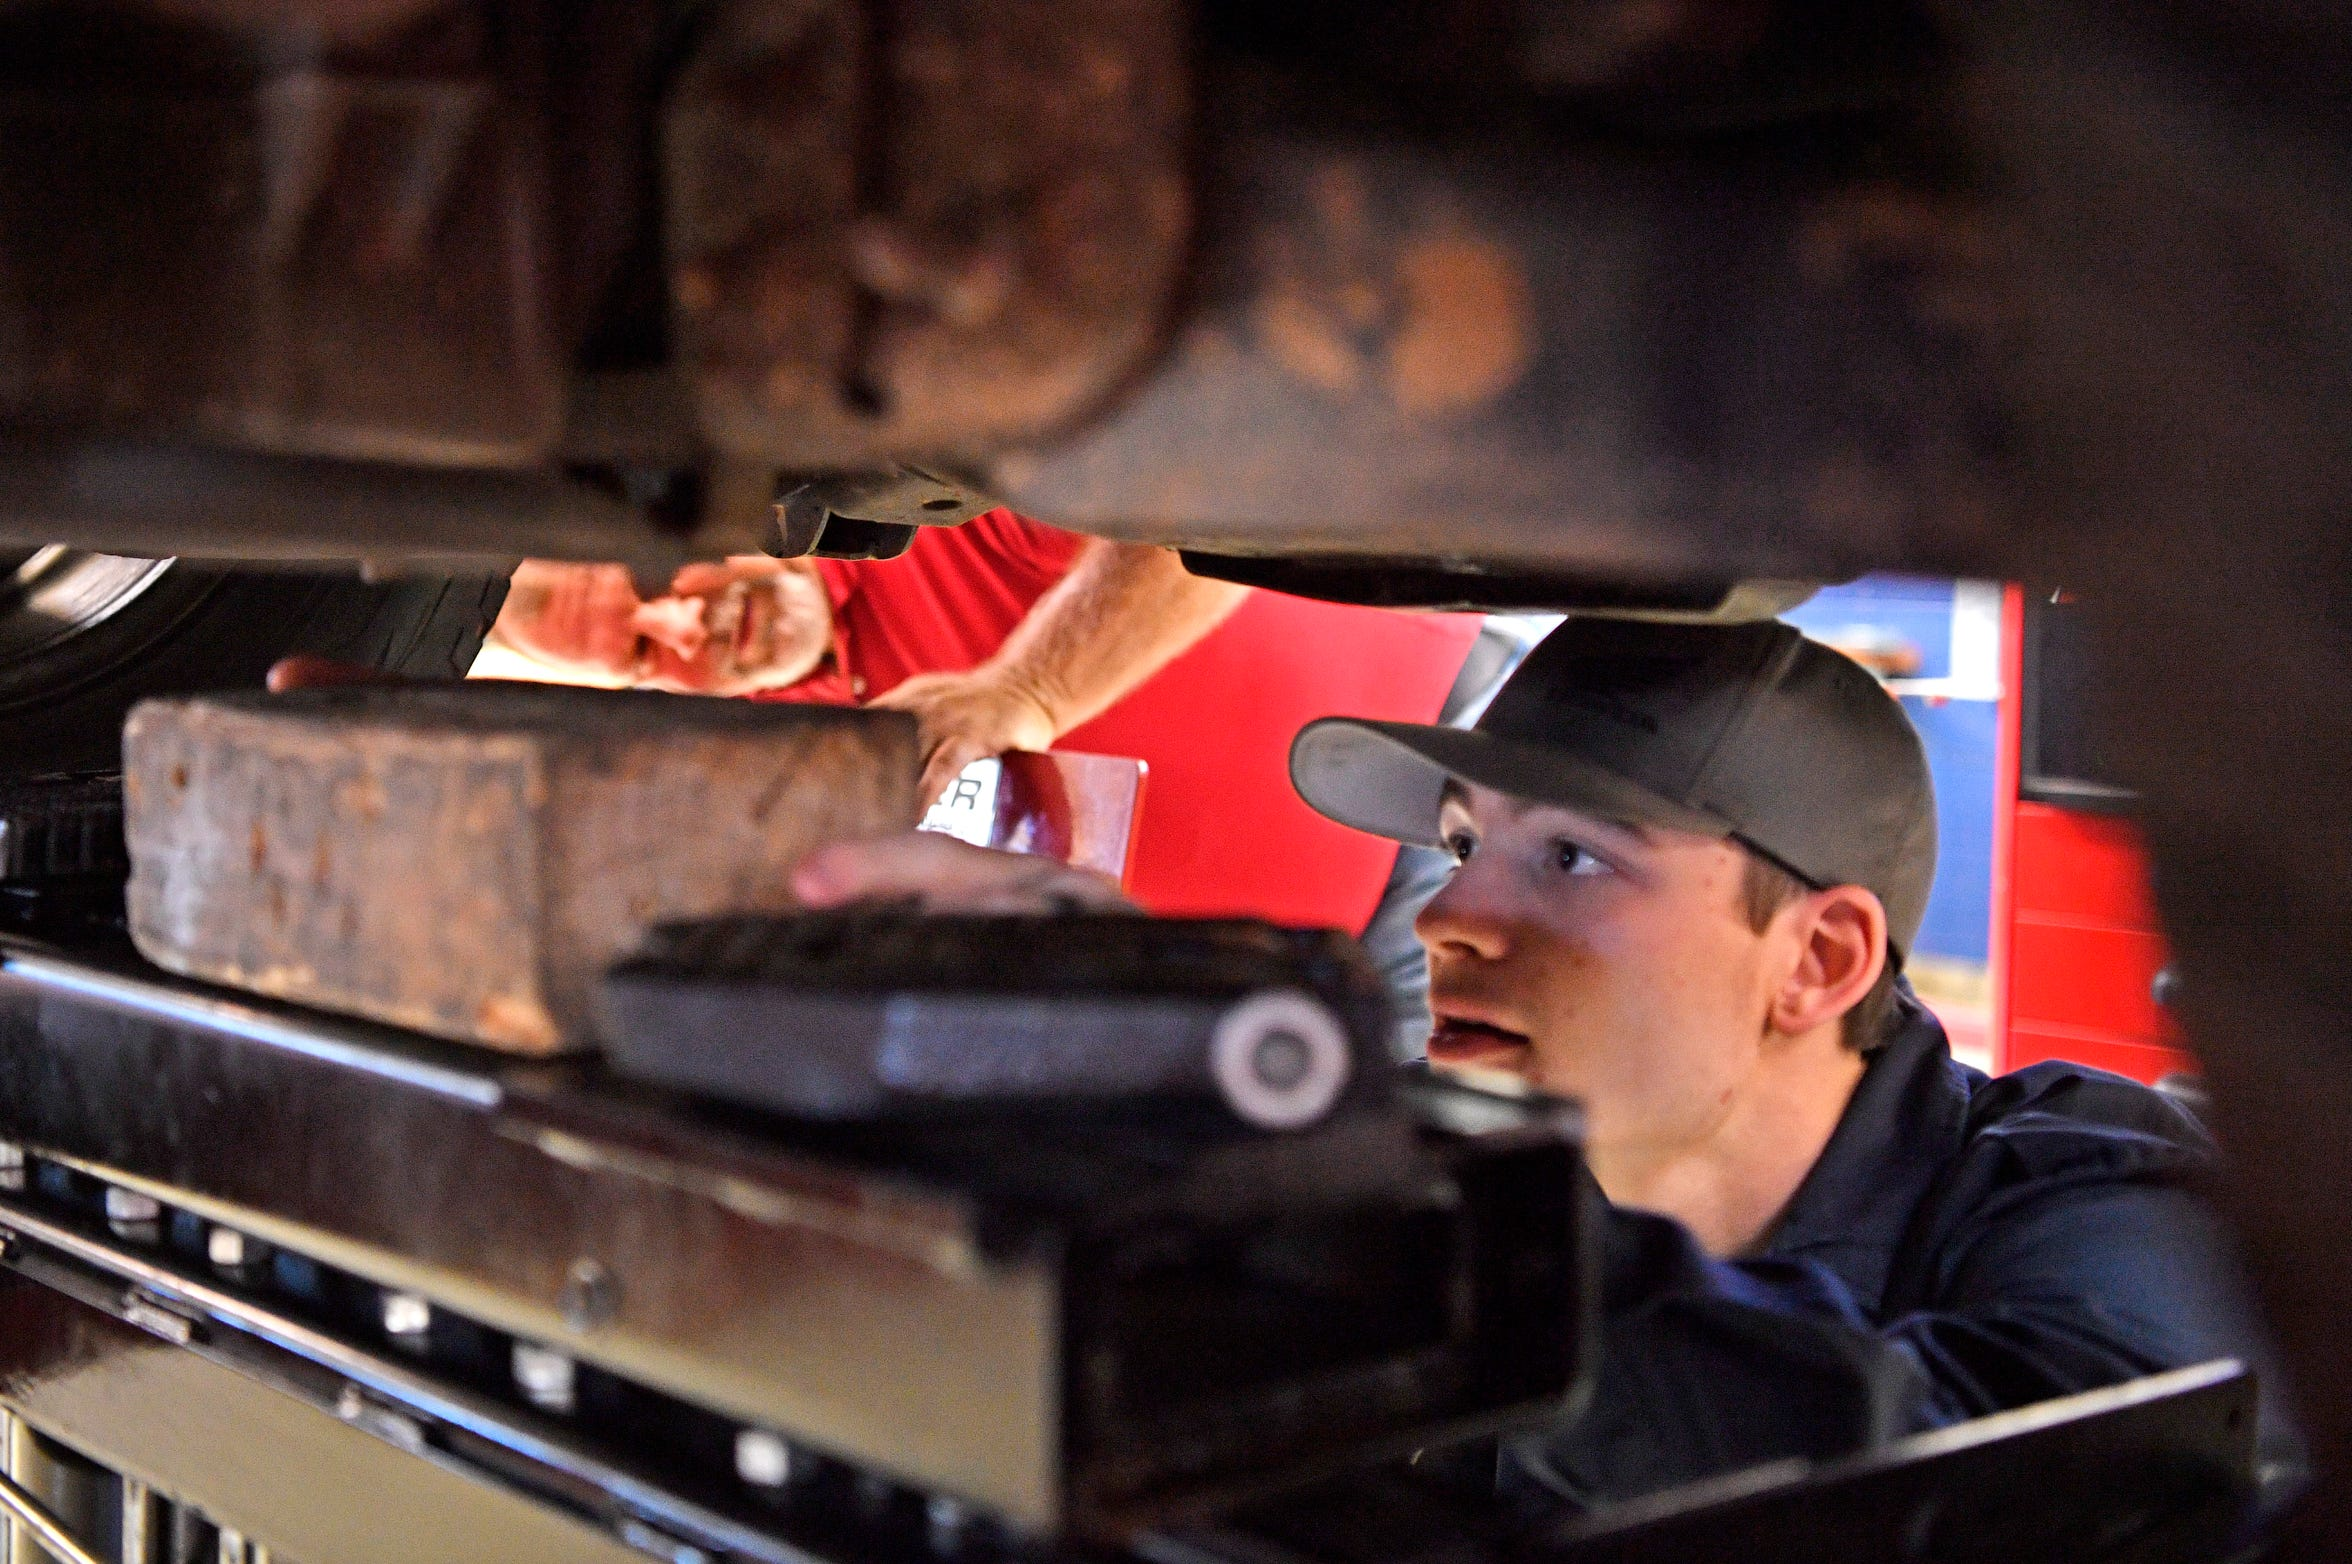 Instructor Mike McCord keeps a close eye on his student Morgan McAlpin at Tennessee College of Applied Technology in Hardeman County. McAlpin hopes to graduate in April and get a job as a mechanic full time.